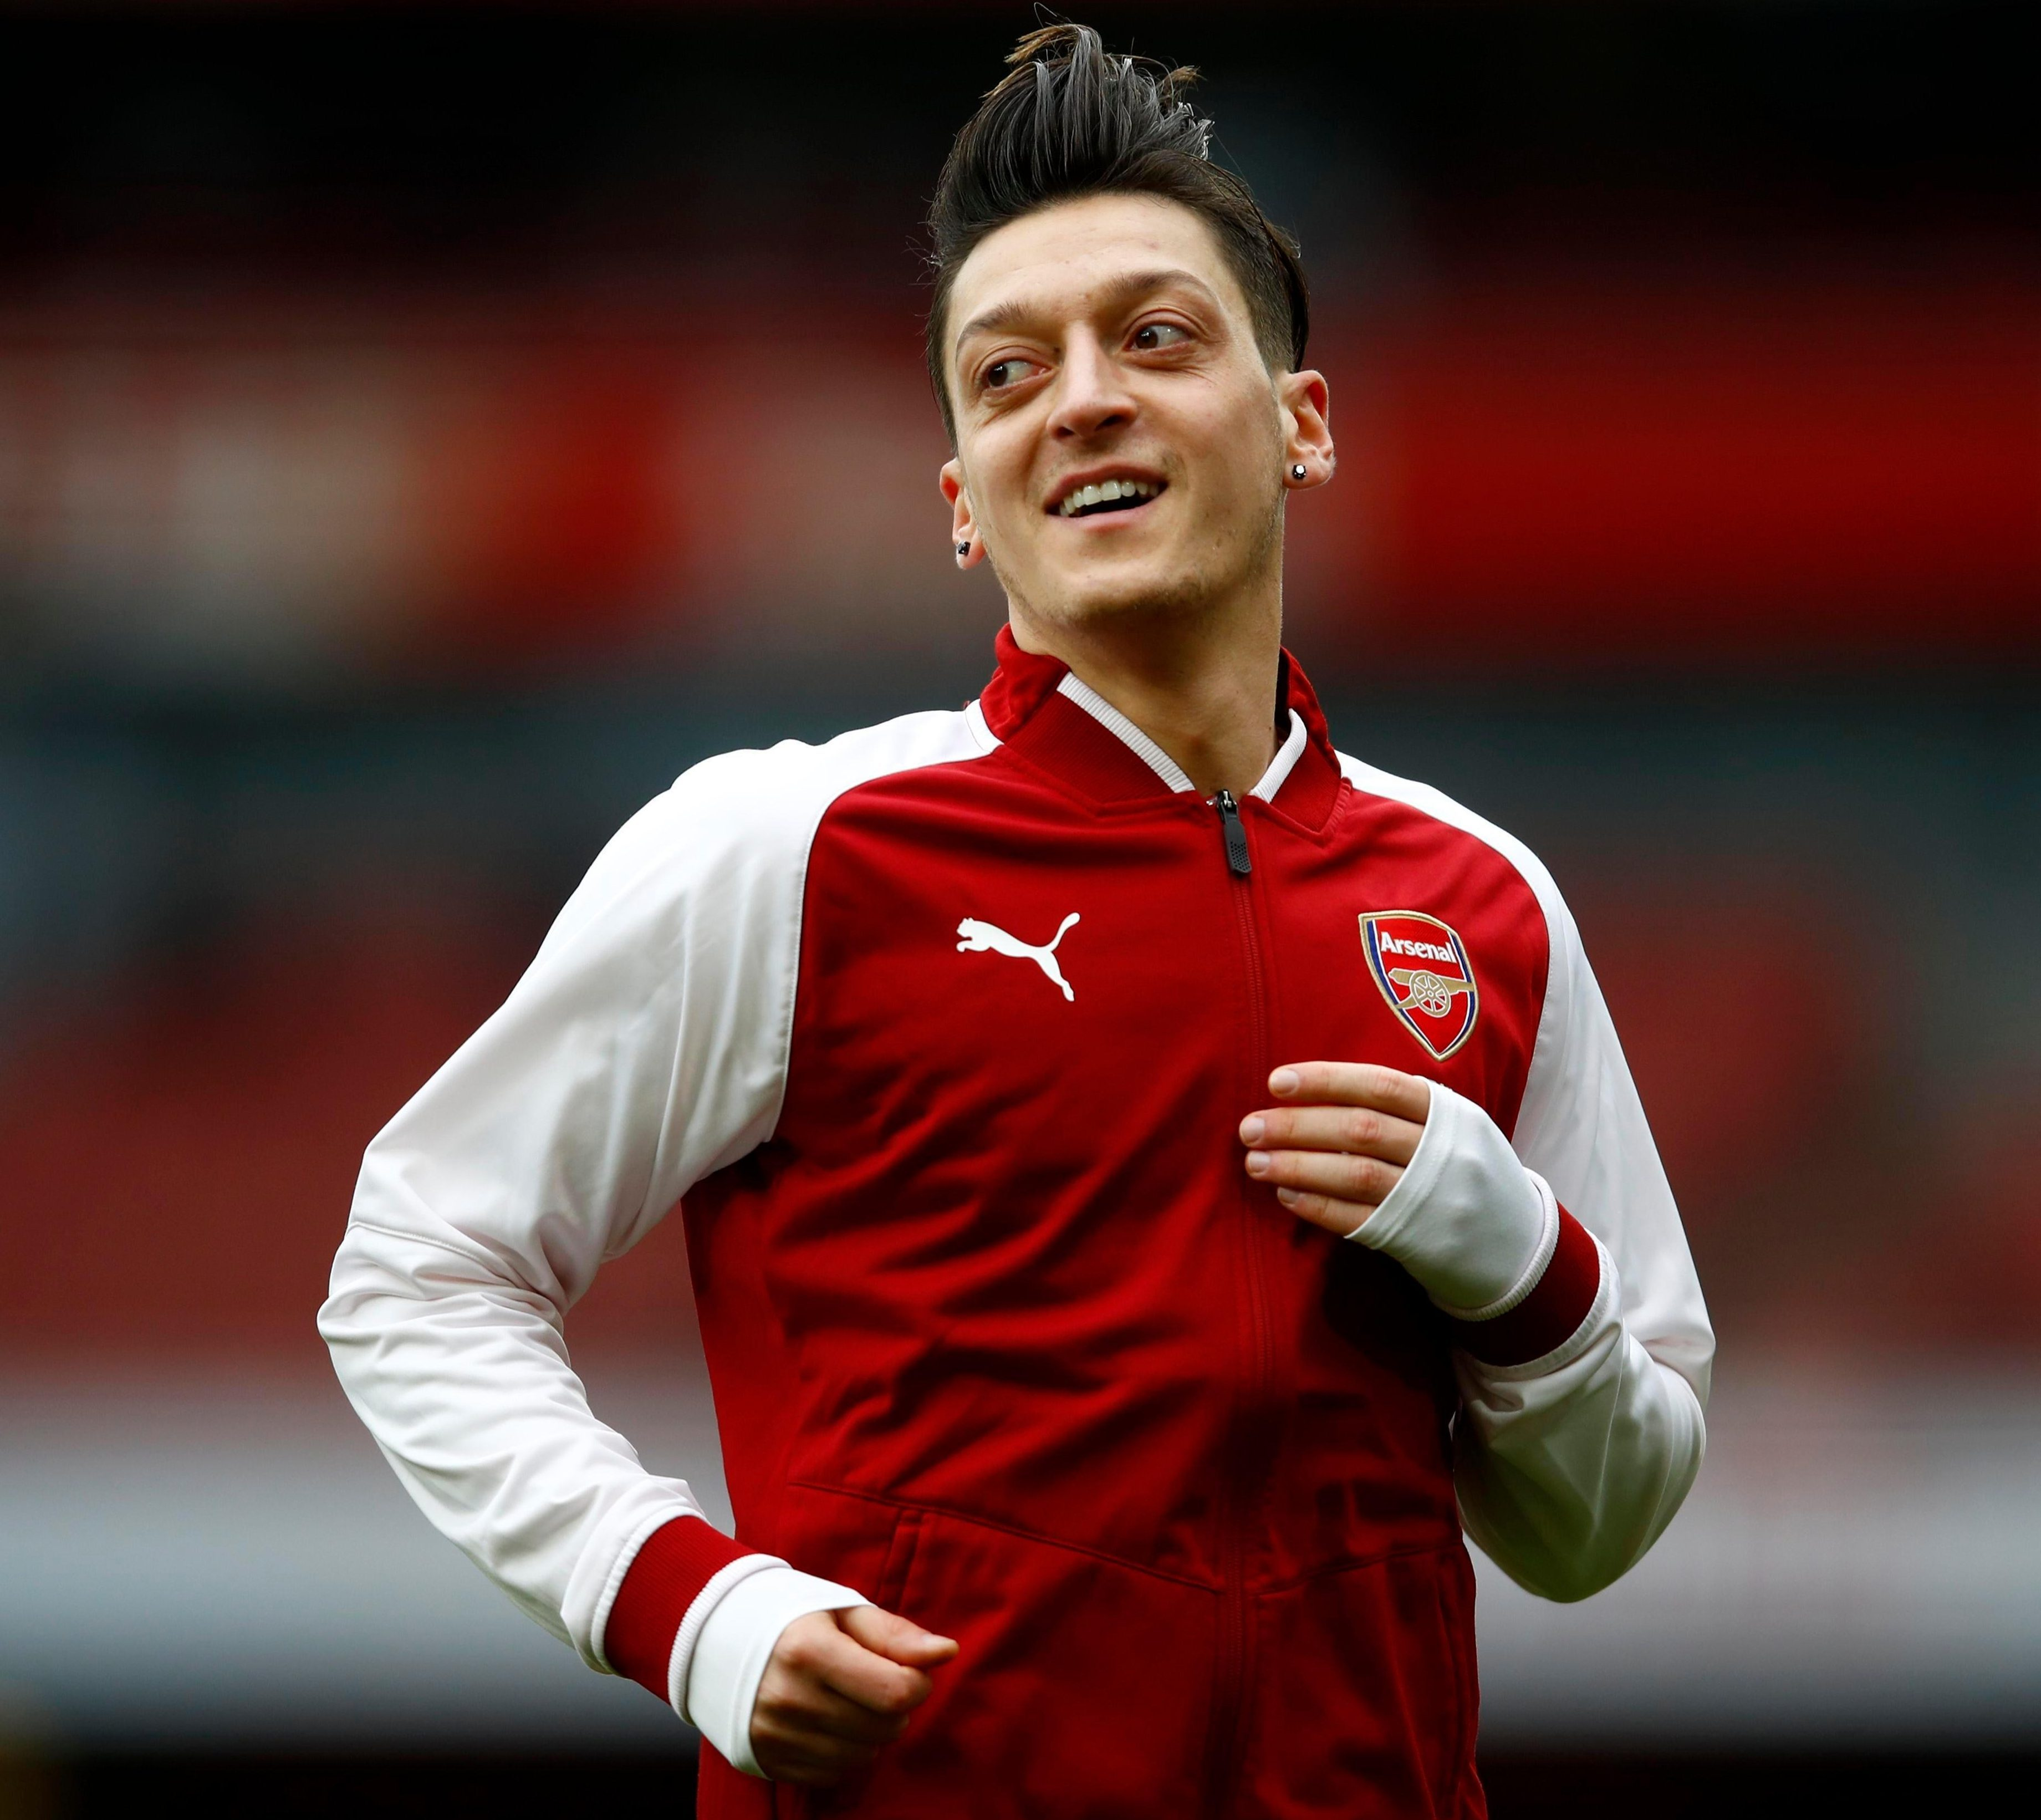 Mesut Ozil finally explains his decision to sign new Arsenal contract after months of speculation over his future